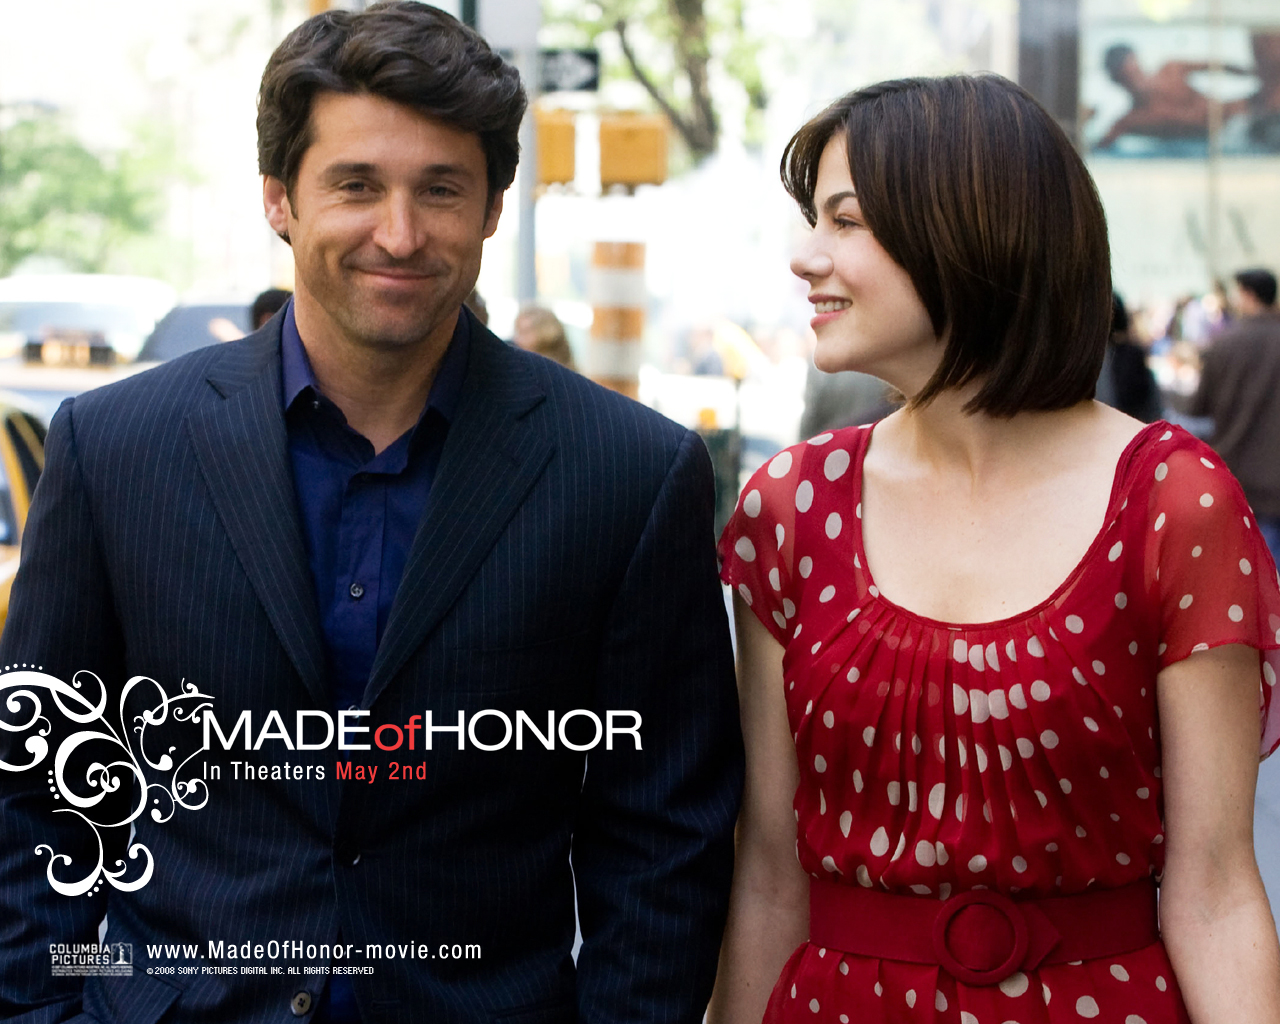 http://2.bp.blogspot.com/-HgV5Hxt_y6M/TfcpgB9A3sI/AAAAAAAADD8/JgRW-c8OacI/s1600/1296413282-Patrick_Dempsey_in_Made_of_Honor_Wallpaper_4_1280.jpg